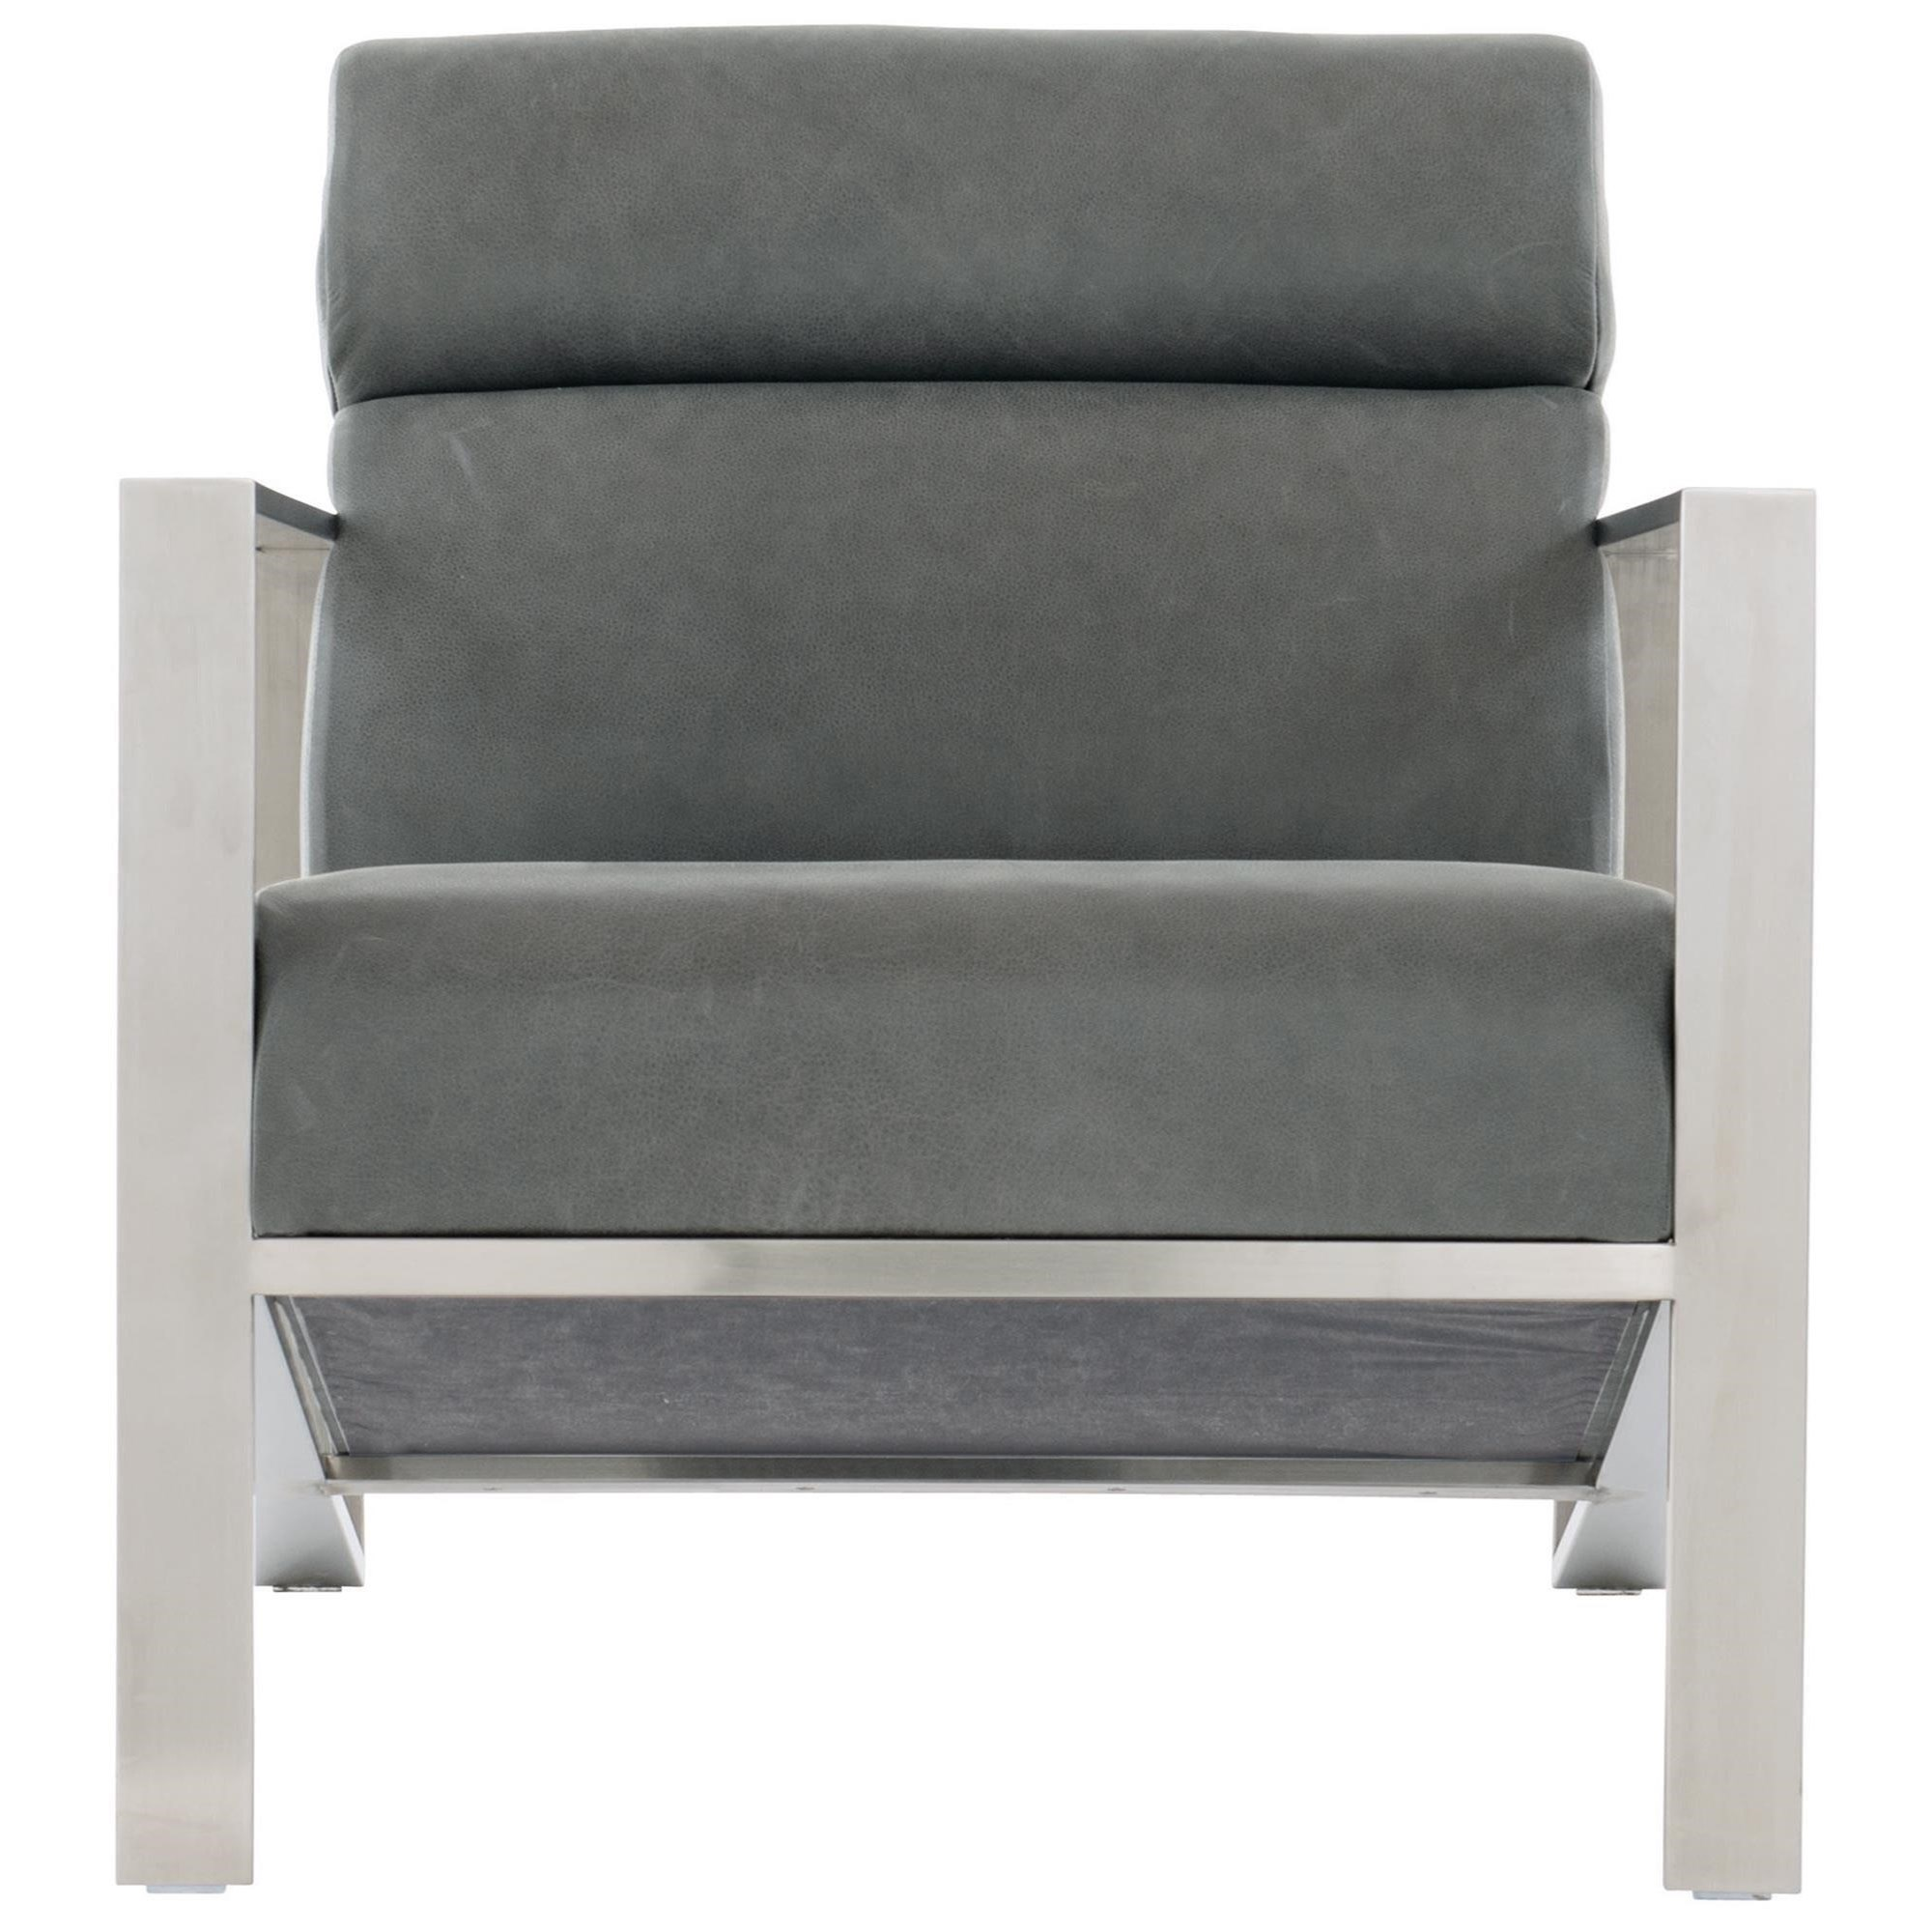 Marco Chair at Williams & Kay